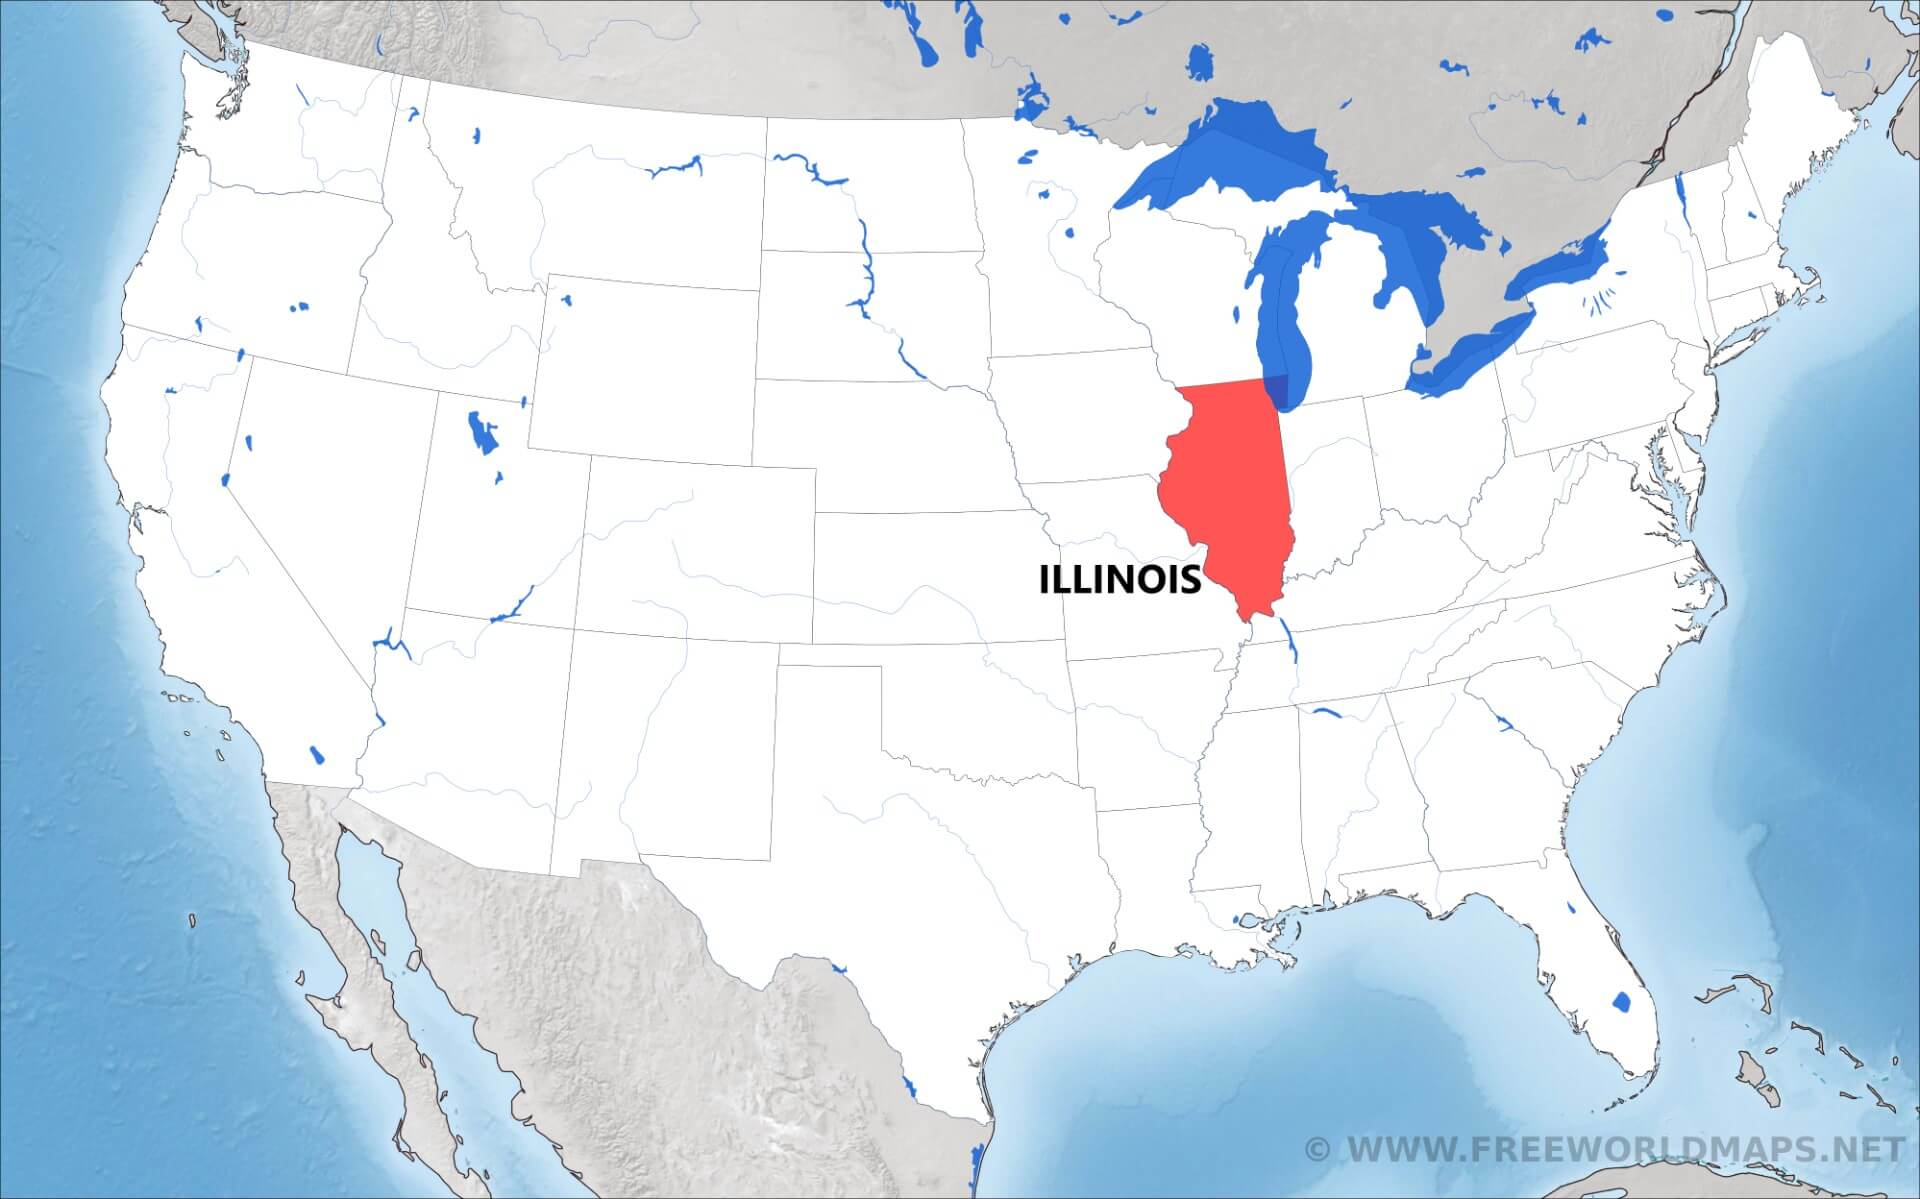 Where Is Illinois Located On The Map - Illinois on the us map